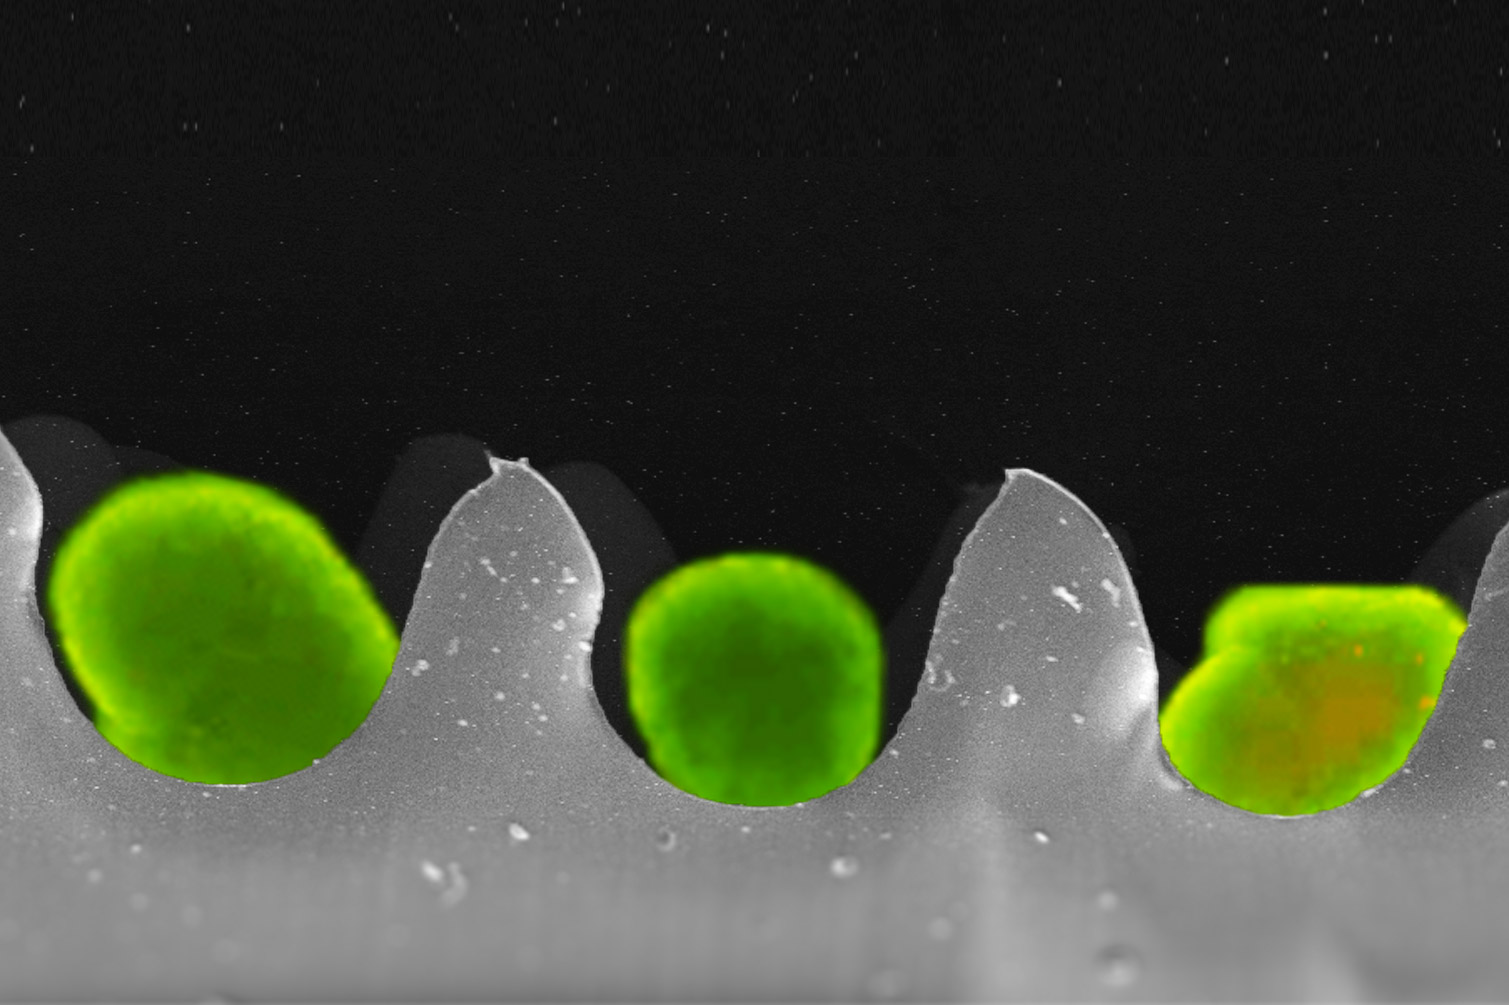 A microscopic 'egg carton' designs makes it possible to save more pancreatic islet cells for transplantation to cure Type1 diabetes patients